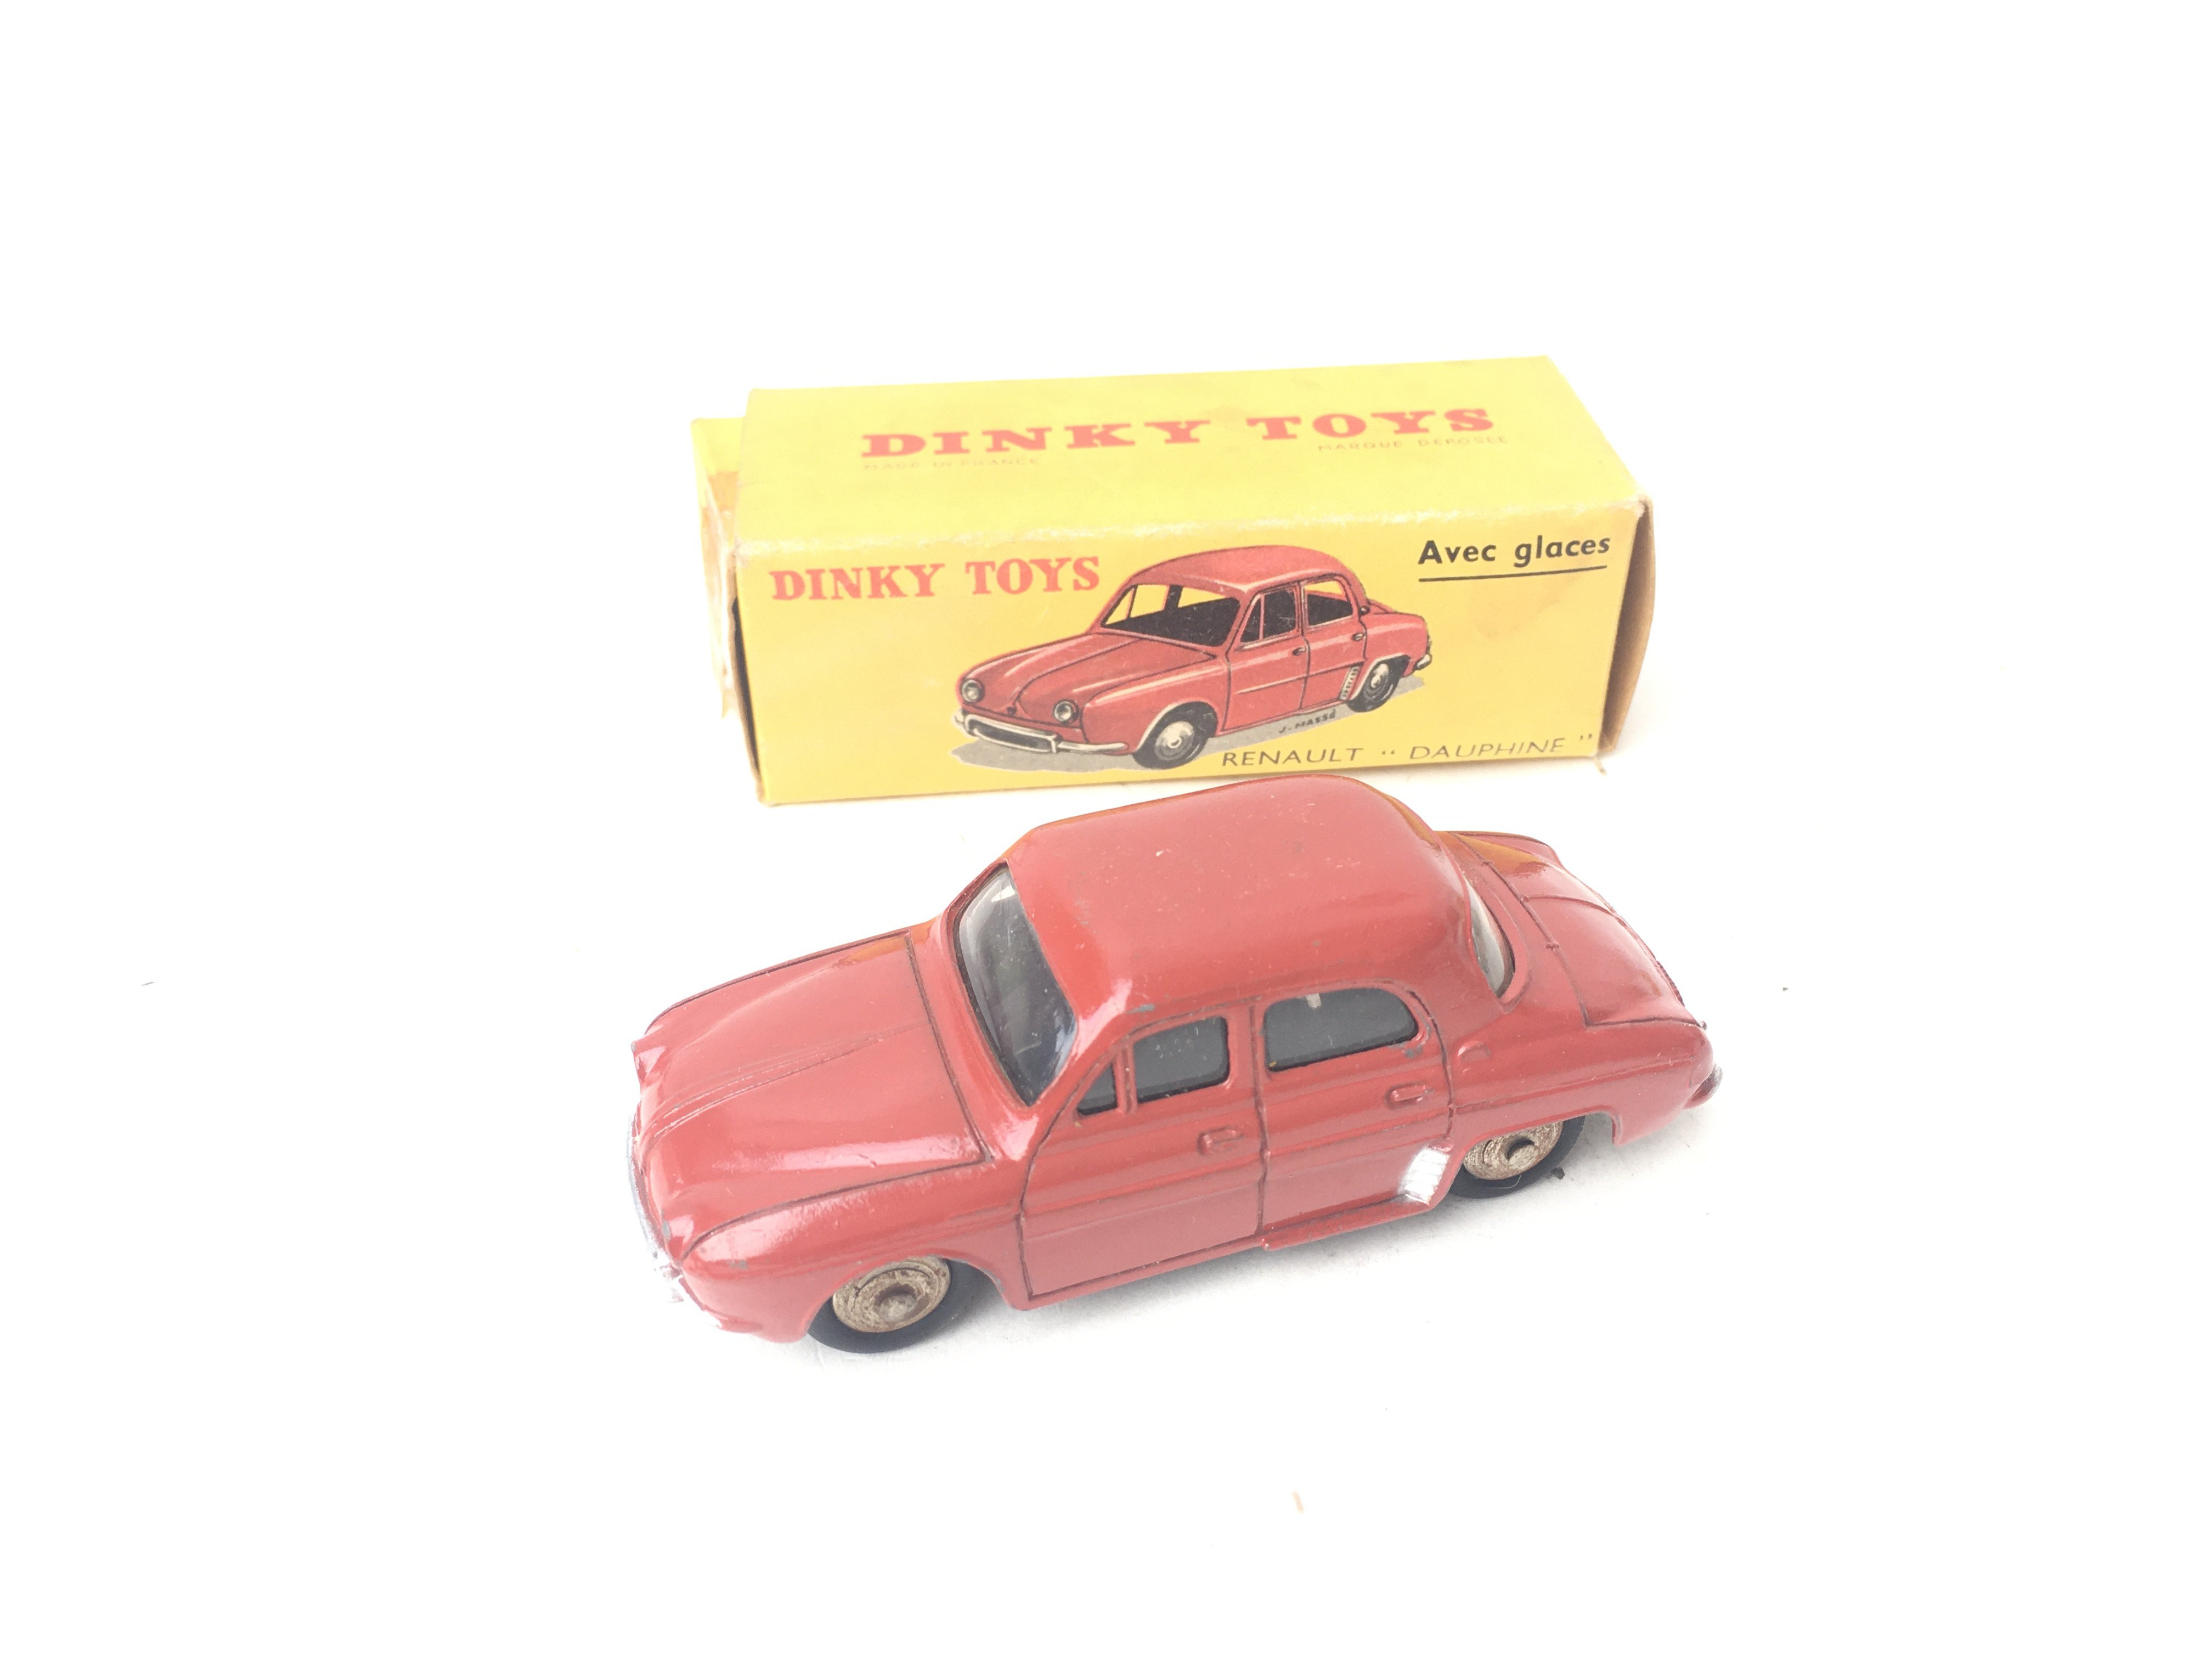 4 X Boxed Dinky Toys including Forward Control Lor - Image 3 of 4